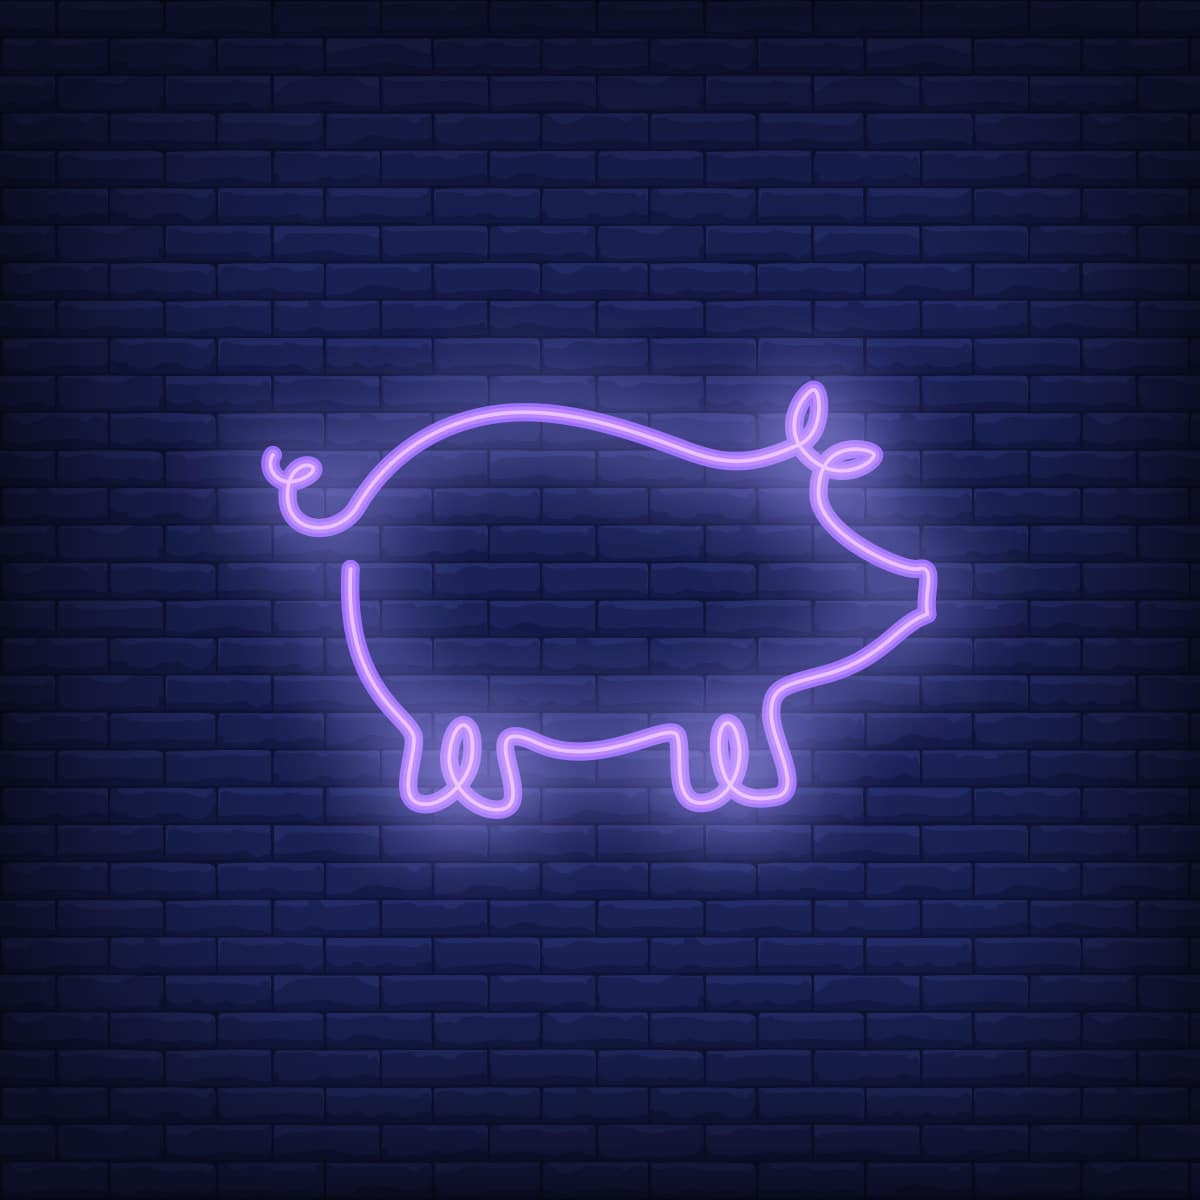 Pig shape neon sign template. Night bright advertisement. Vector illustration for restaurant, cafe, diner, menu, advertising design